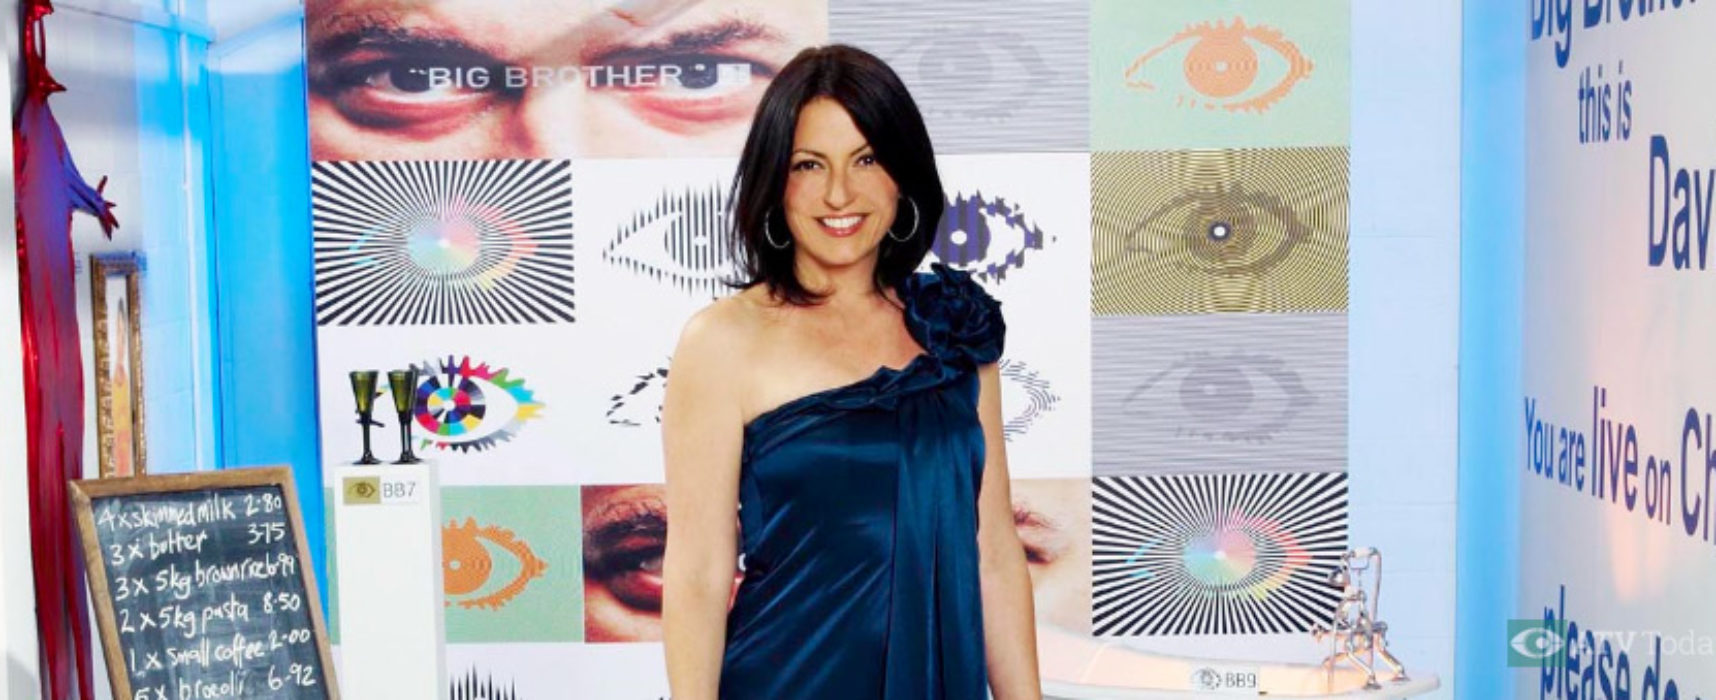 No current plans for Big Brother anniversary documentary say C4